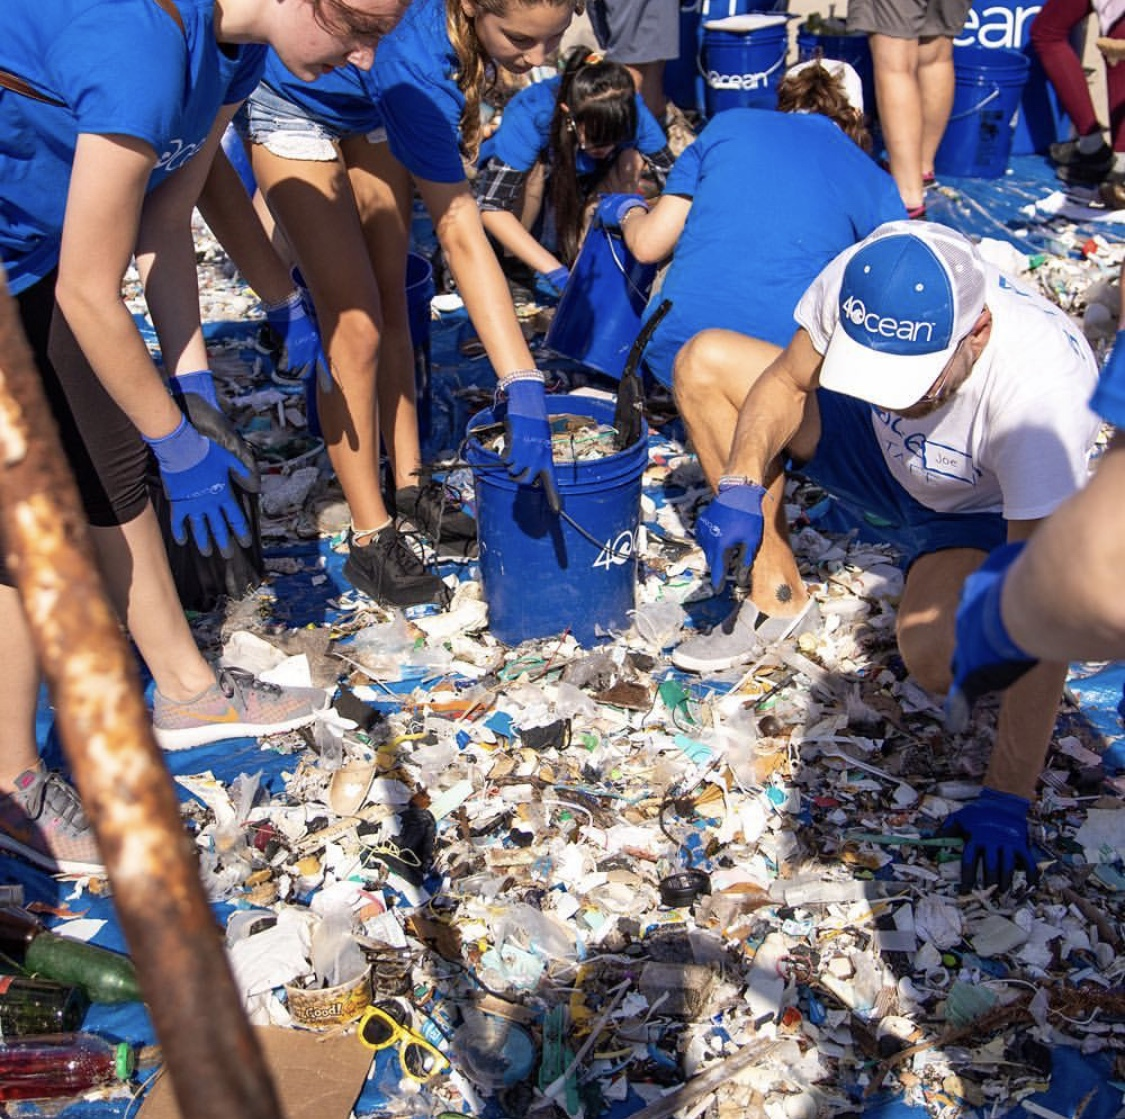 4Ocean volunteers gathered around plastic on the beach